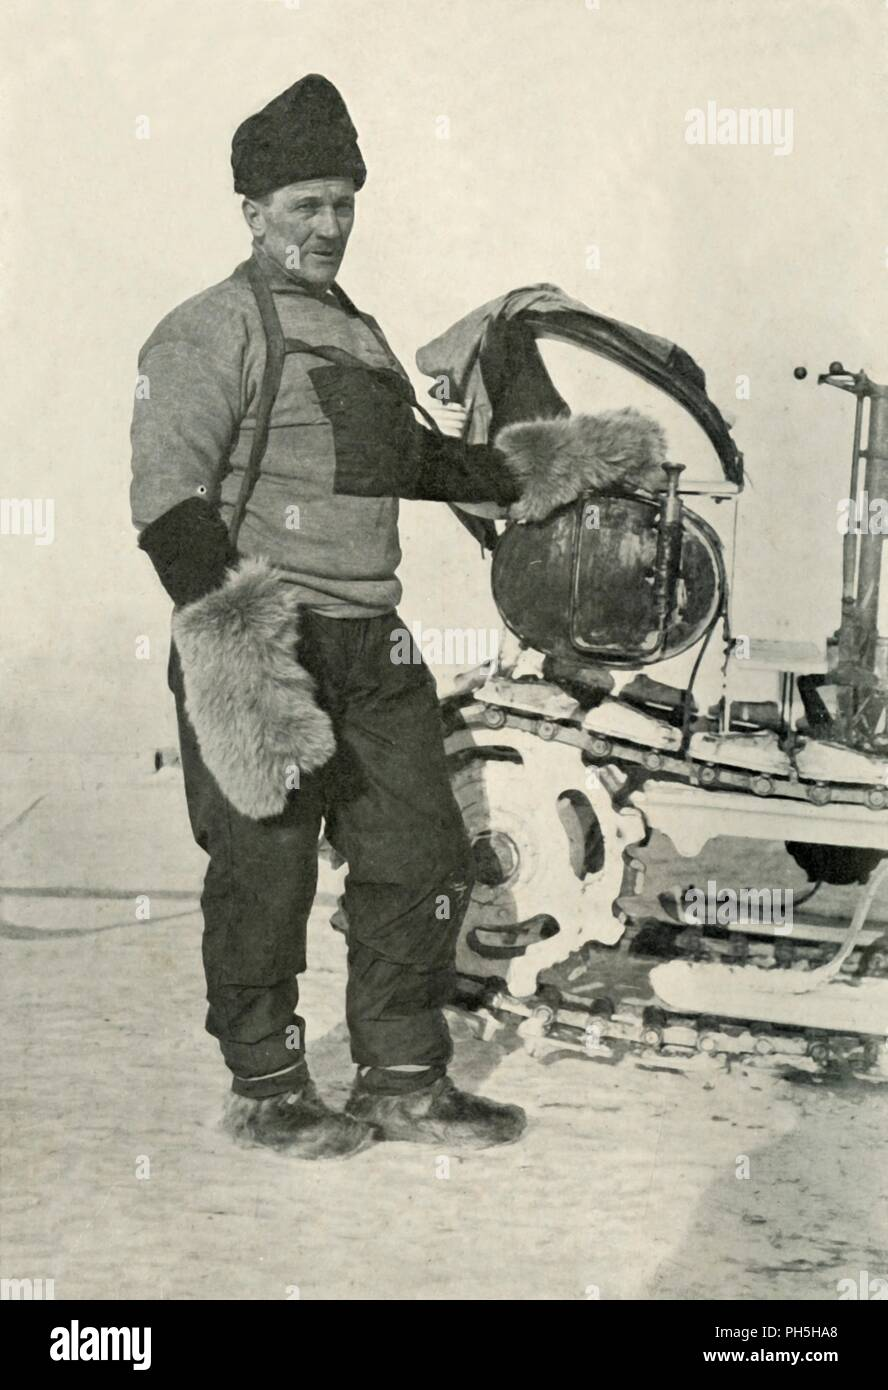 'Chief Stoker Lashly (Who received the Albert Medal)', 1911, (1913). William Lashly (1867-1940) standing next to a motor sledge. He was awarded the Albert Medal for saving the life of fellow expedition member Edward Evans. The final expedition of British Antarctic explorer Captain Robert Falcon Scott (1868-1912) left London on 1 June 1910 bound for the South Pole. The Terra Nova Expedition, officially the British Antarctic Expedition (1910-1913), included a geologist, a zoologist, a surgeon, a photographer, an engineer, a ski expert, a meteorologist and a physicist among others. Scott wished t - Stock Image